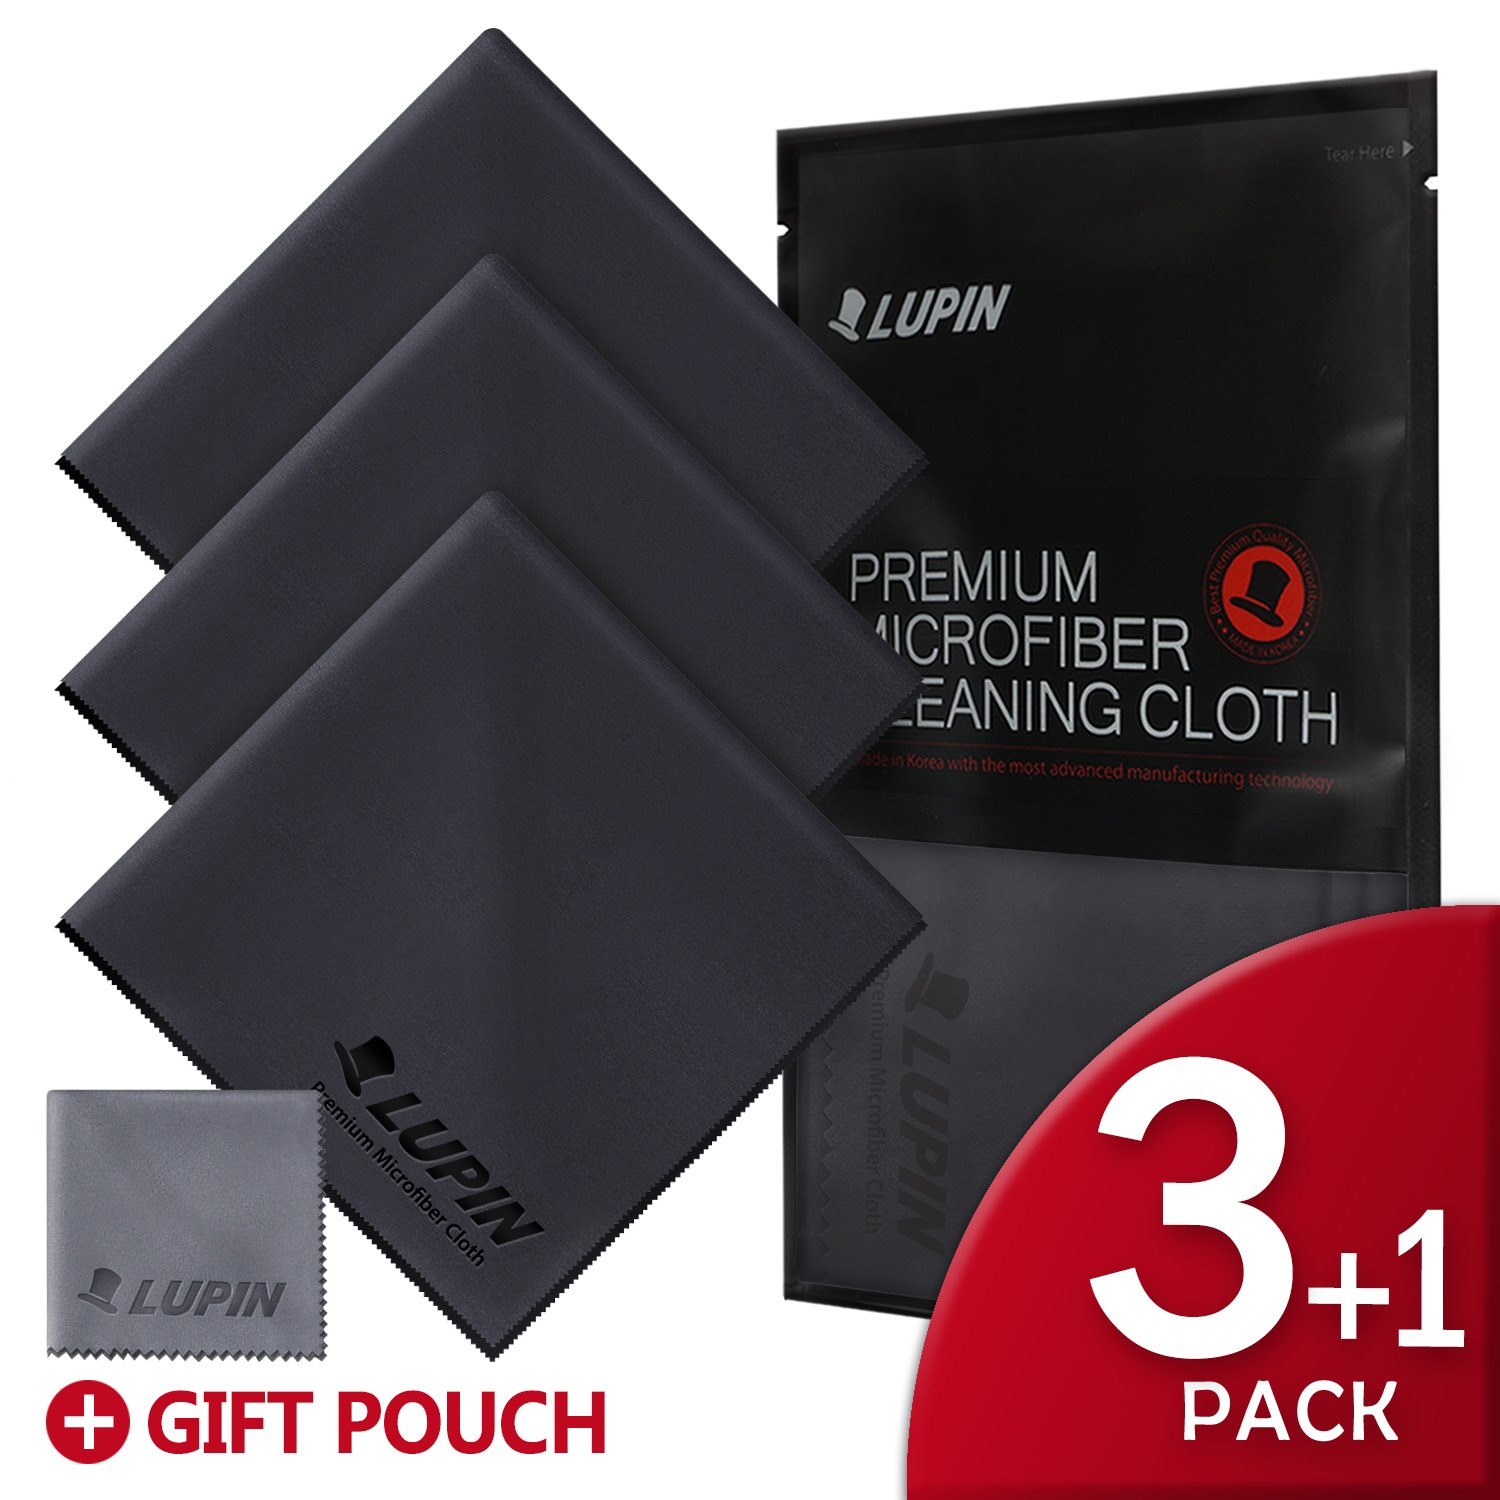 Lupin Microfiber Cleaning Cloths, Large 3 + 1 PACK Premium Ultra Lint Free Polishing Cloth for Cell Phone, Tablets, Laptops, iPad, Glasses, Auto Detail, TV Screens & Other Surfaces - Black